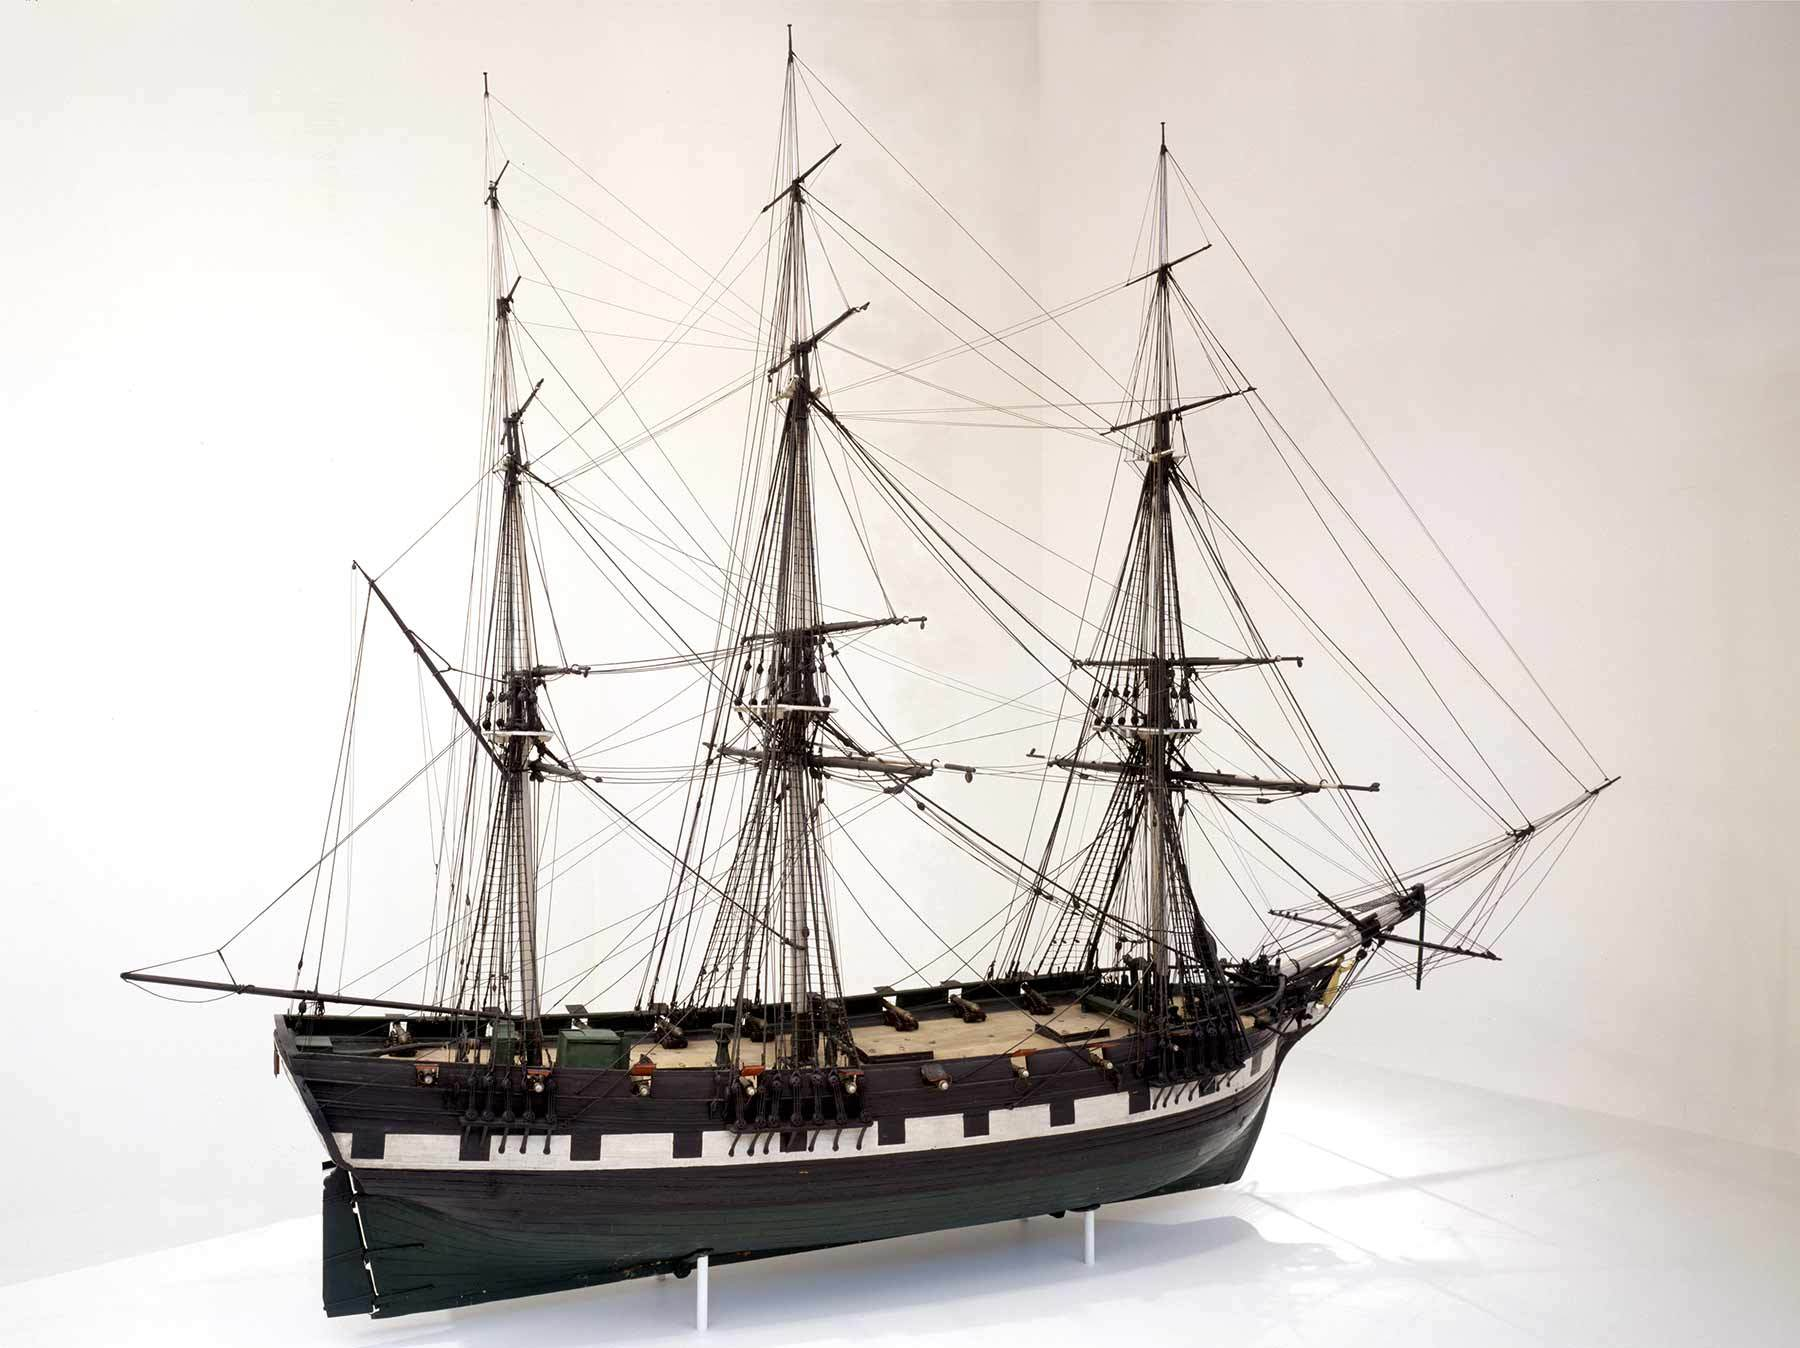 United States Model of the 1797 ship Friendship